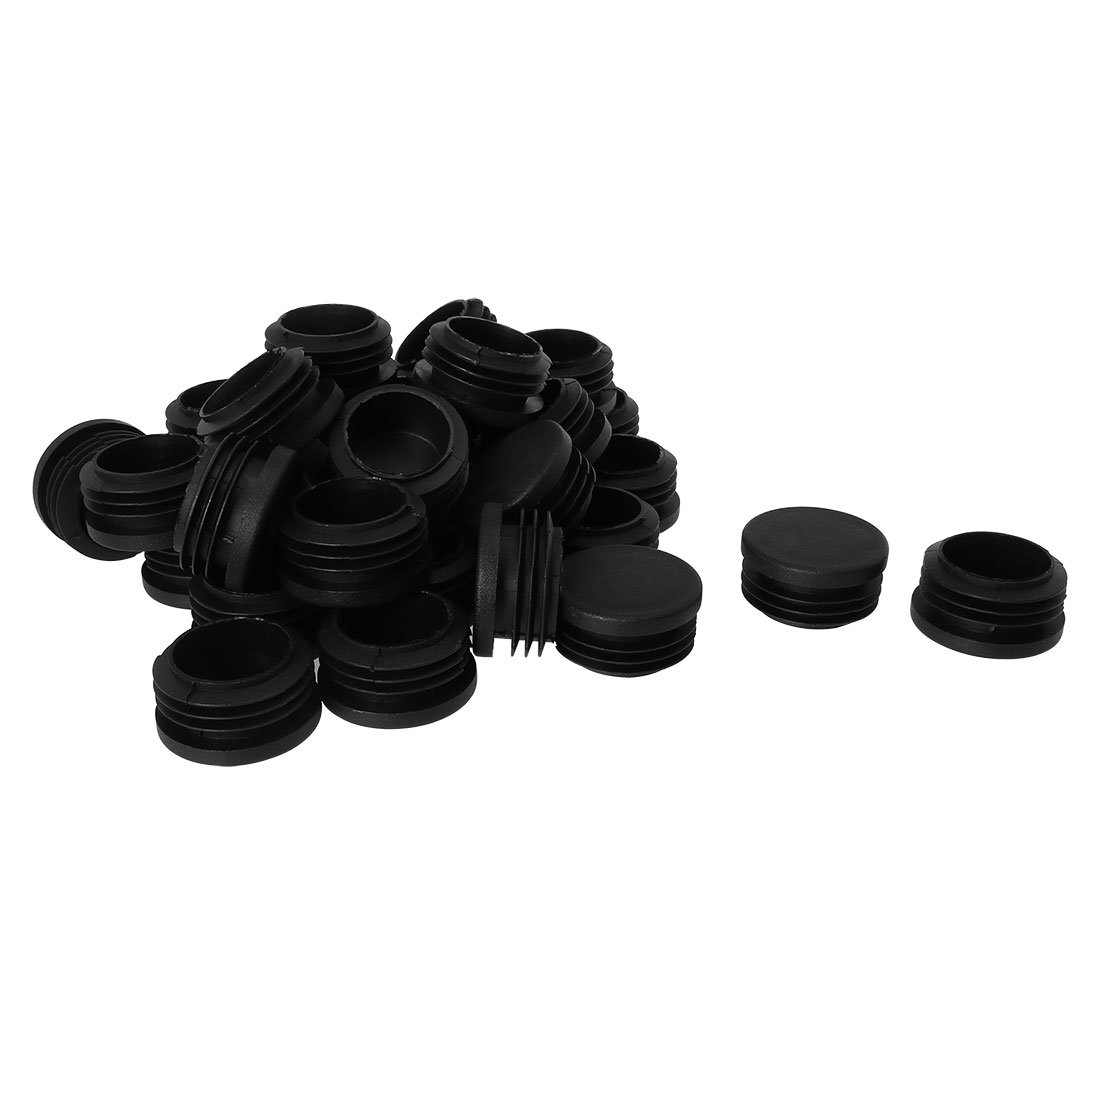 uxcell 1 1/2'' 1.5'' OD Plastic Round Tube Insert Glide End Cap Pad 35pcs 1.38''-1.46'' Inner Dia for Deck Table Desk Protector Reduce Noise